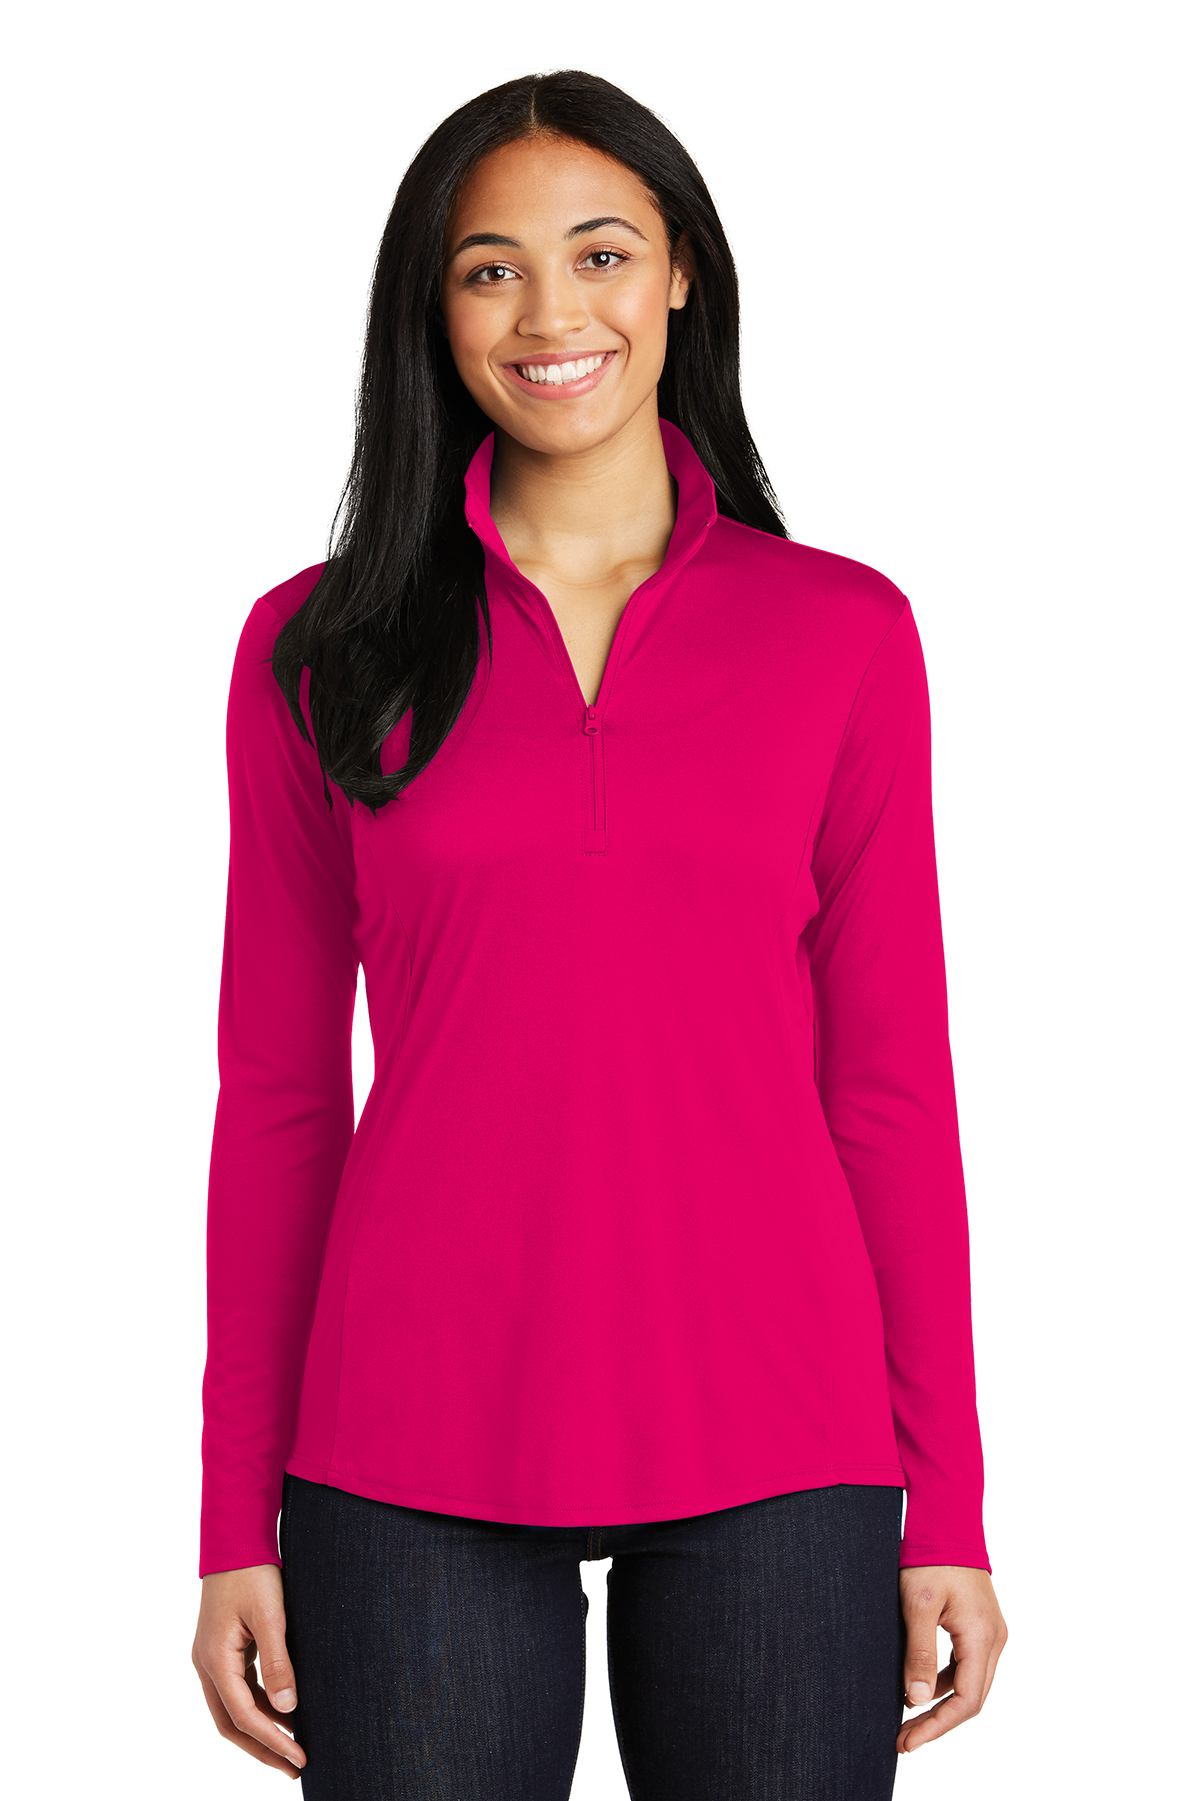 Sport Tek Ladies Posicharge Competitor 1 4 Zip Pullover 1 2 1 4 Zip Sweatshirts Fleece Sport Tek Great prices and discounts on the best women's athletic shirts from adidas, under armour, nike and more. sport tek ladies posicharge